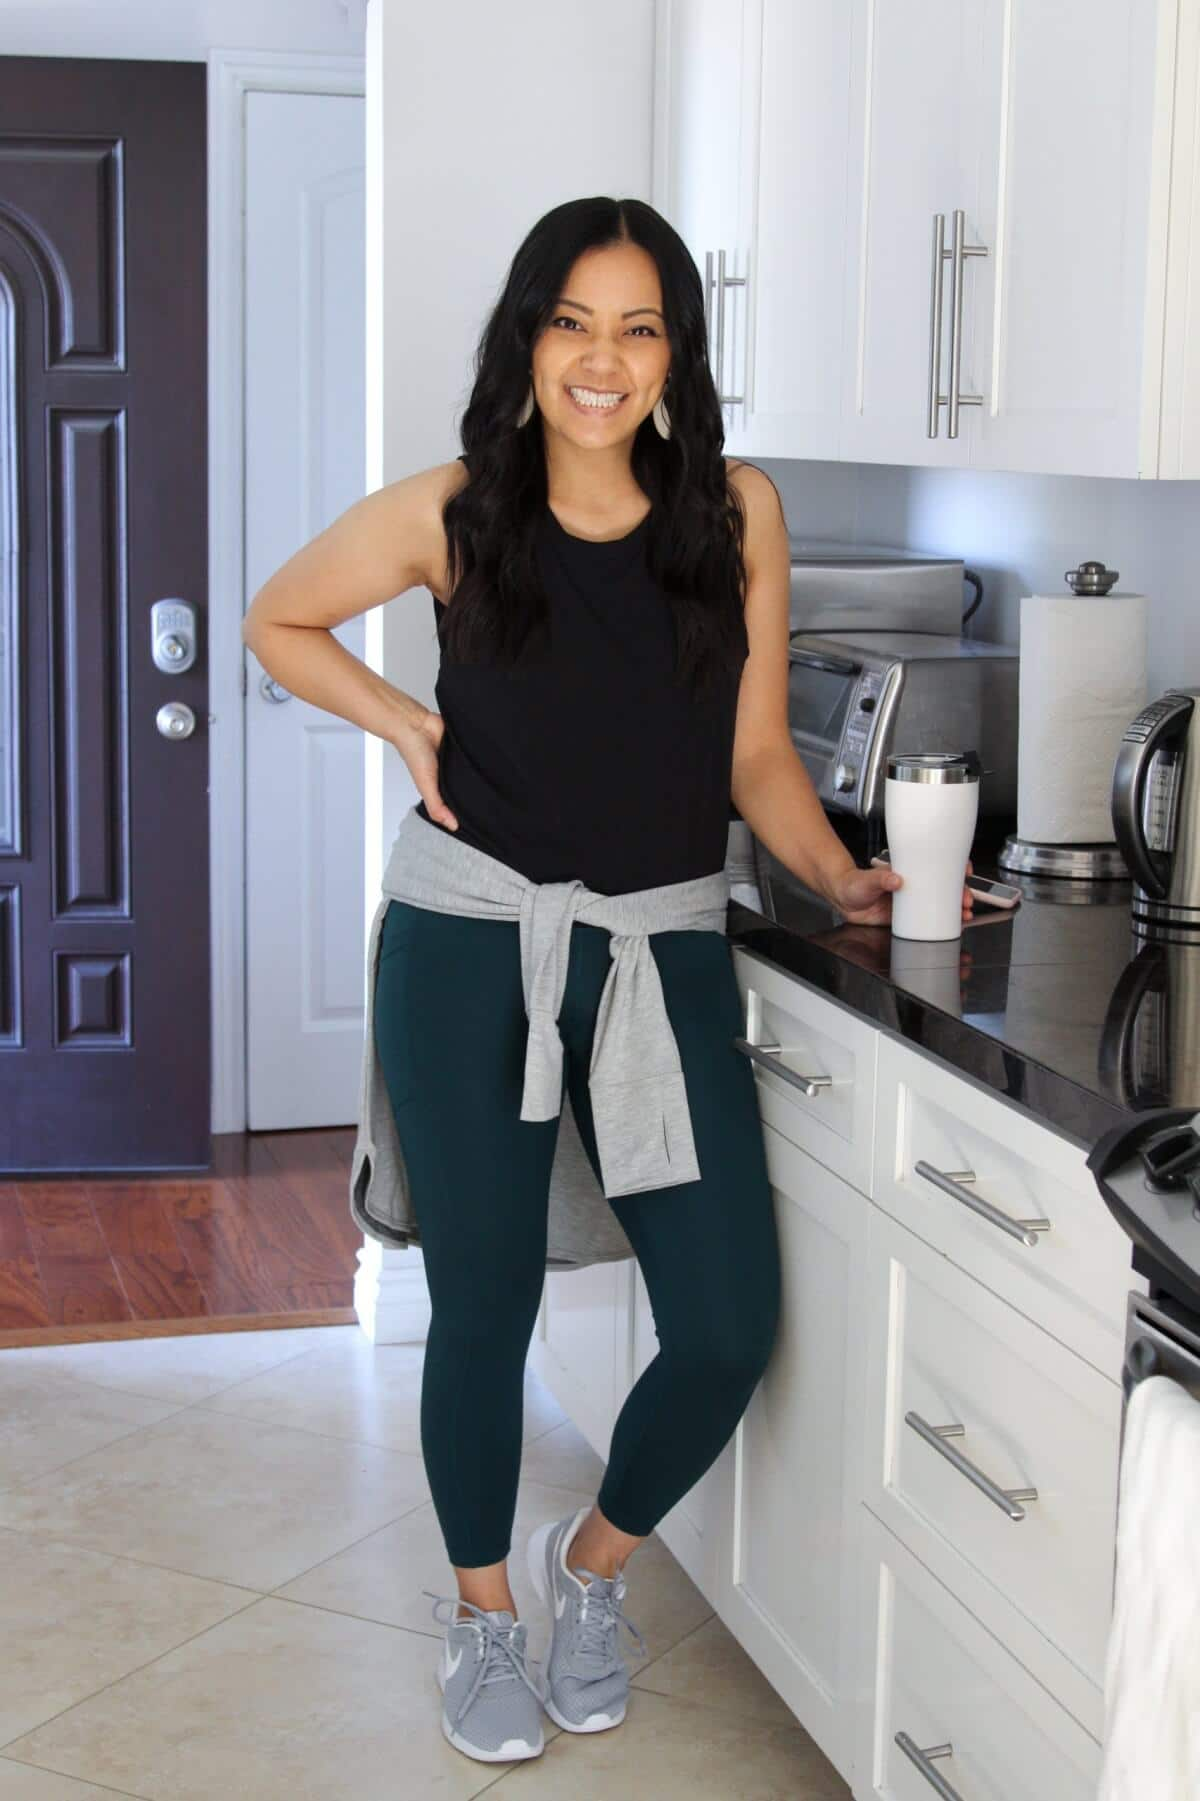 workout outfit with green leggings + black tank + grey sneakers